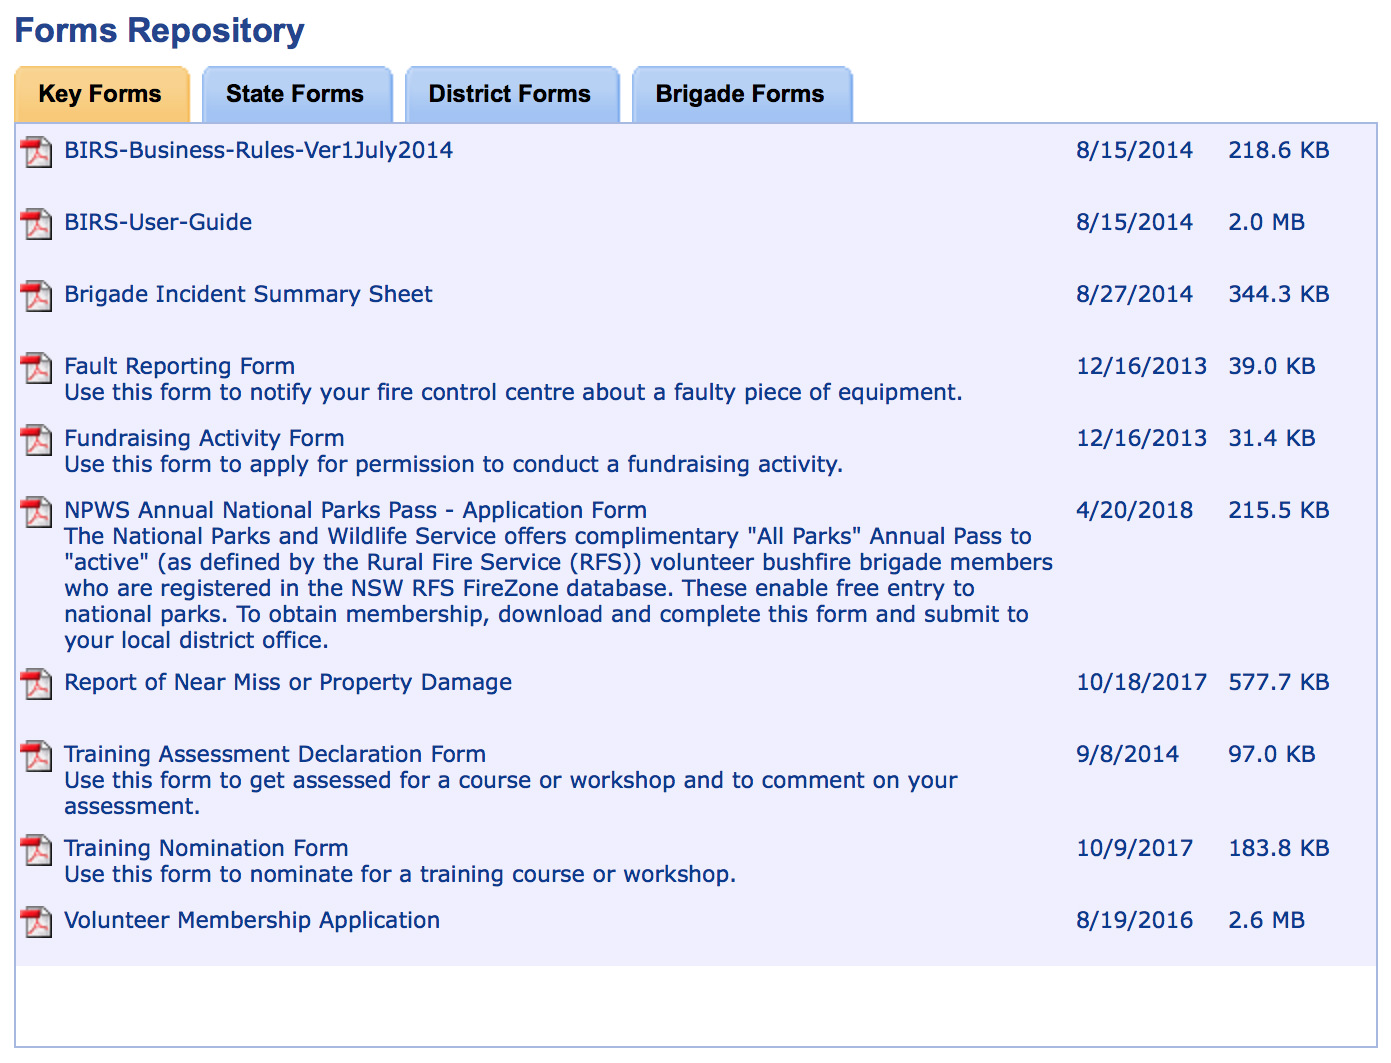 The Forms Repository from My-RFS (screenshot) with the Volunteer Membership Application form at the bottom of the list.